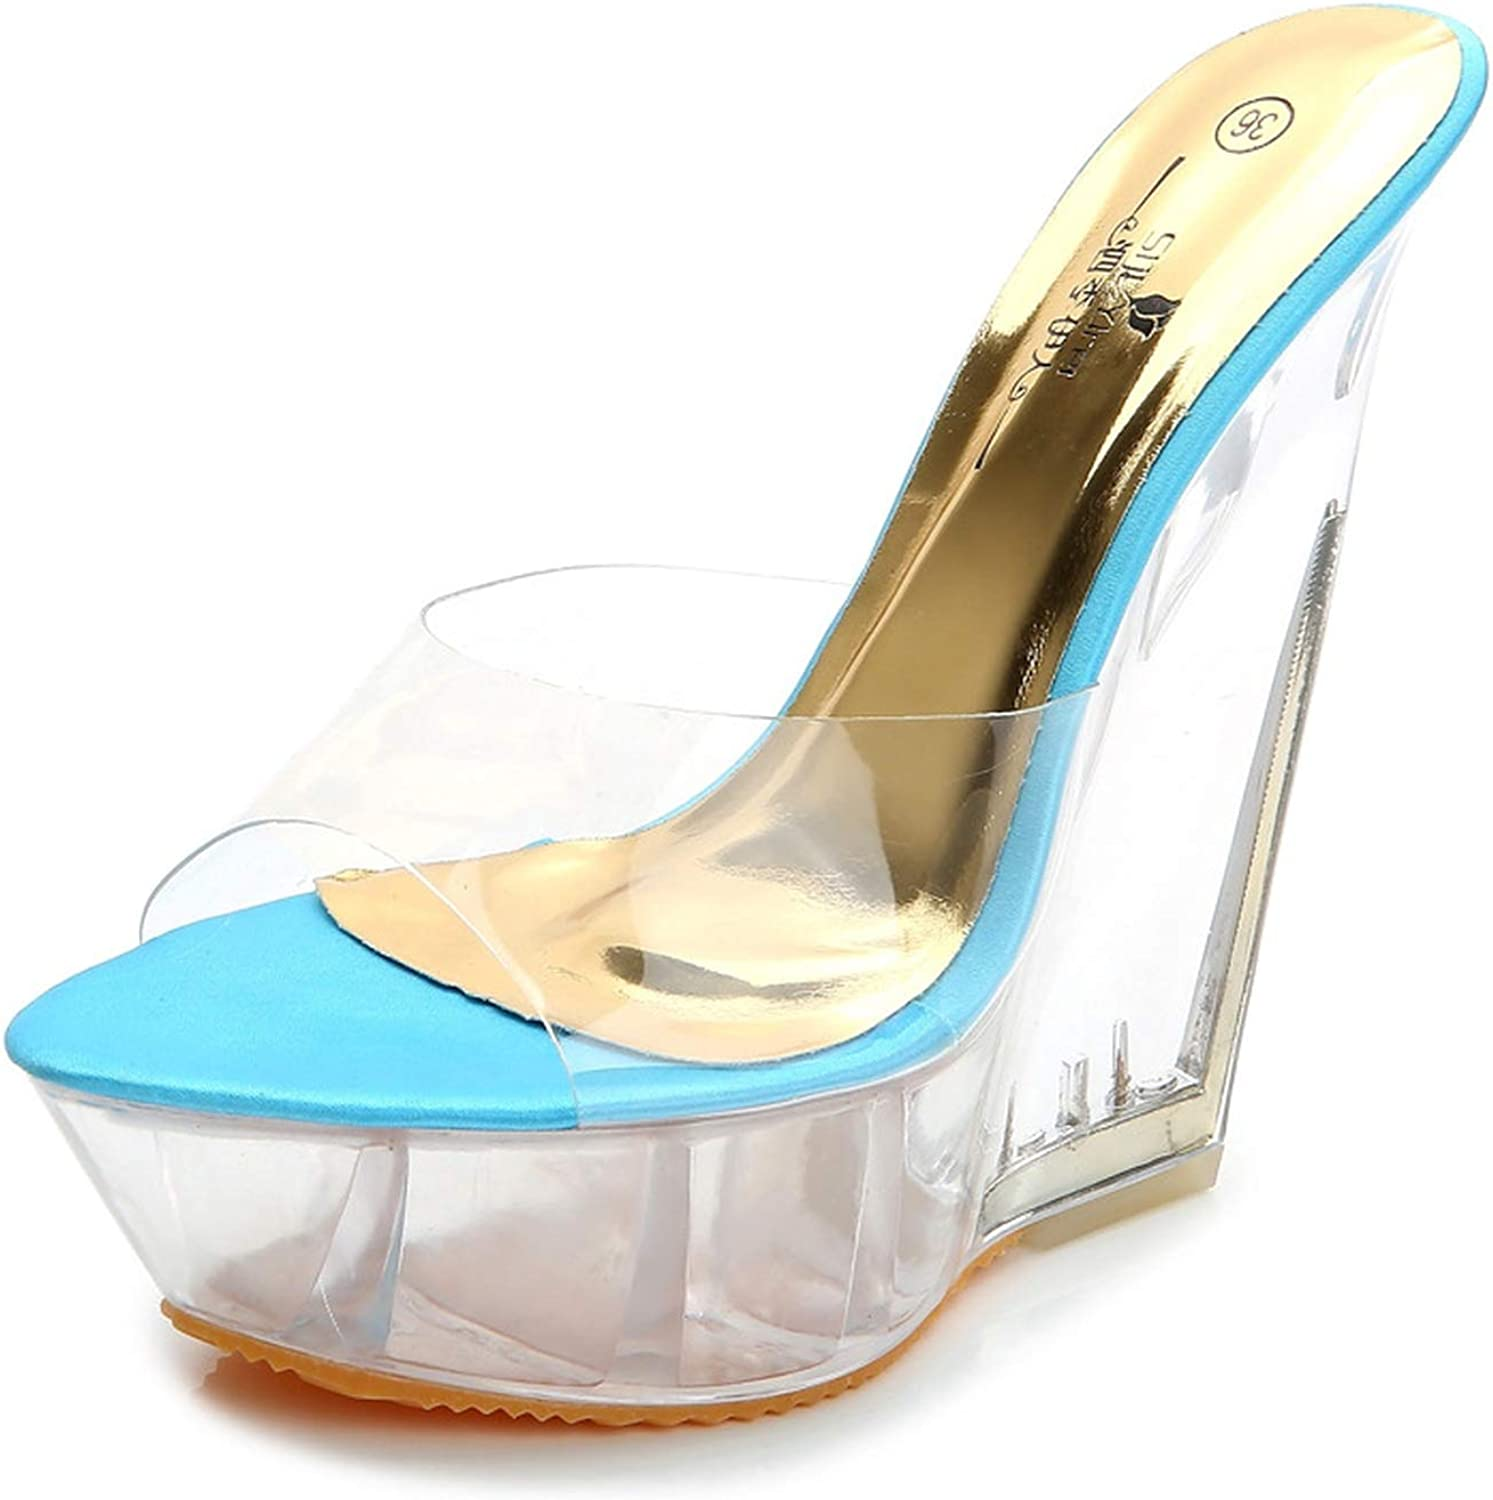 Summer Thick-Soled High-Heeled Sandals Slippers Transparent Crystal shoes Waterproof Platform 15Cm Wedge shoes Lfd-126